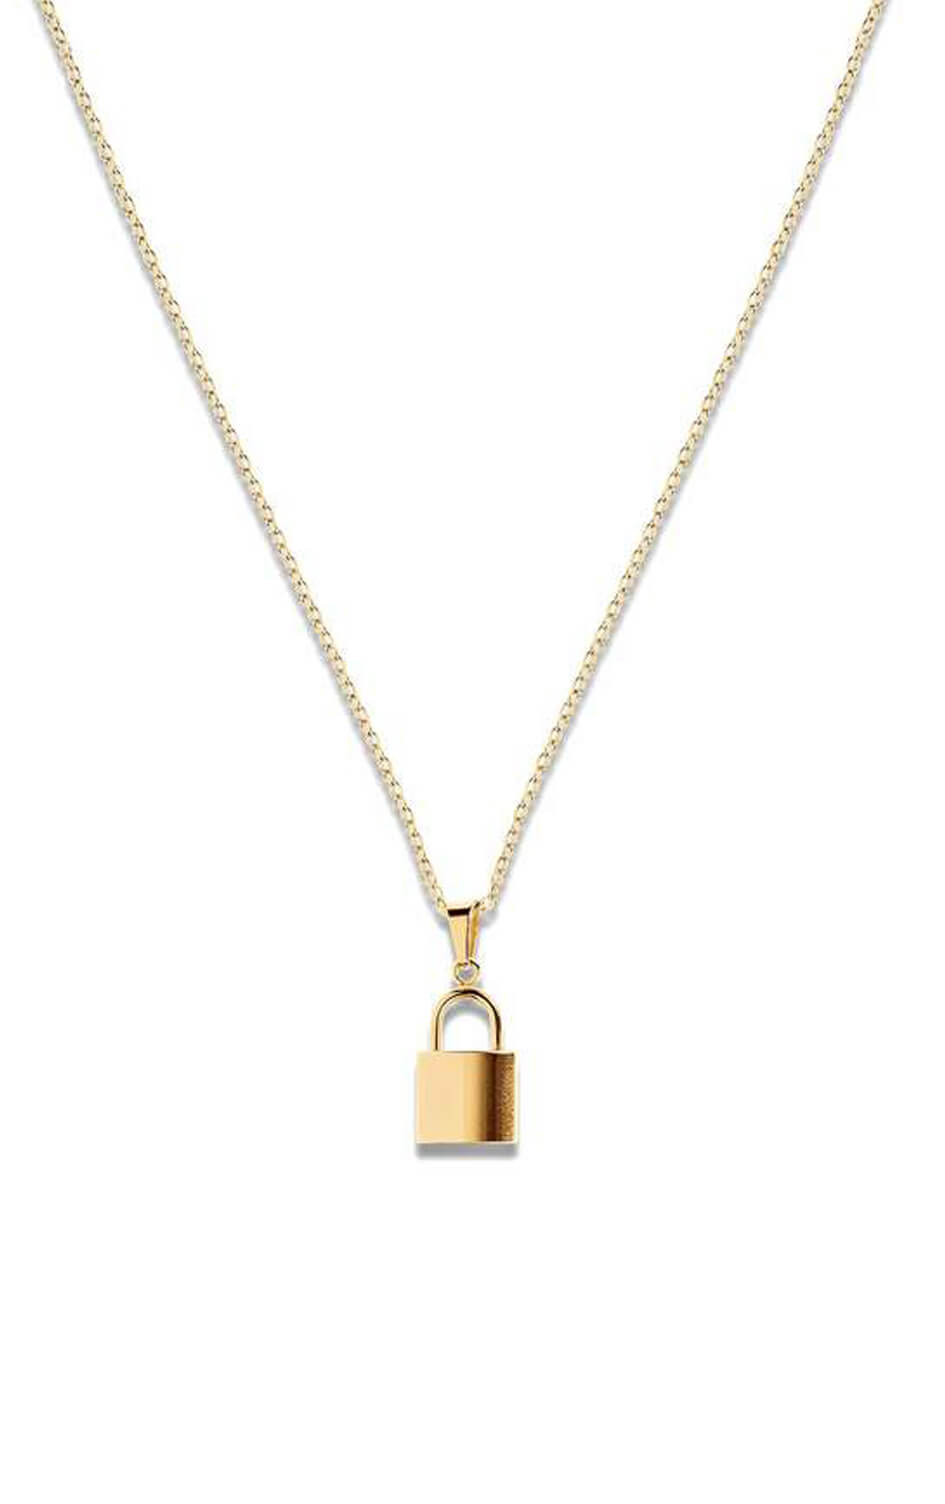 shop-dana-scott-ellie-vail-gold-uma-lock-chain-pendant-necklace